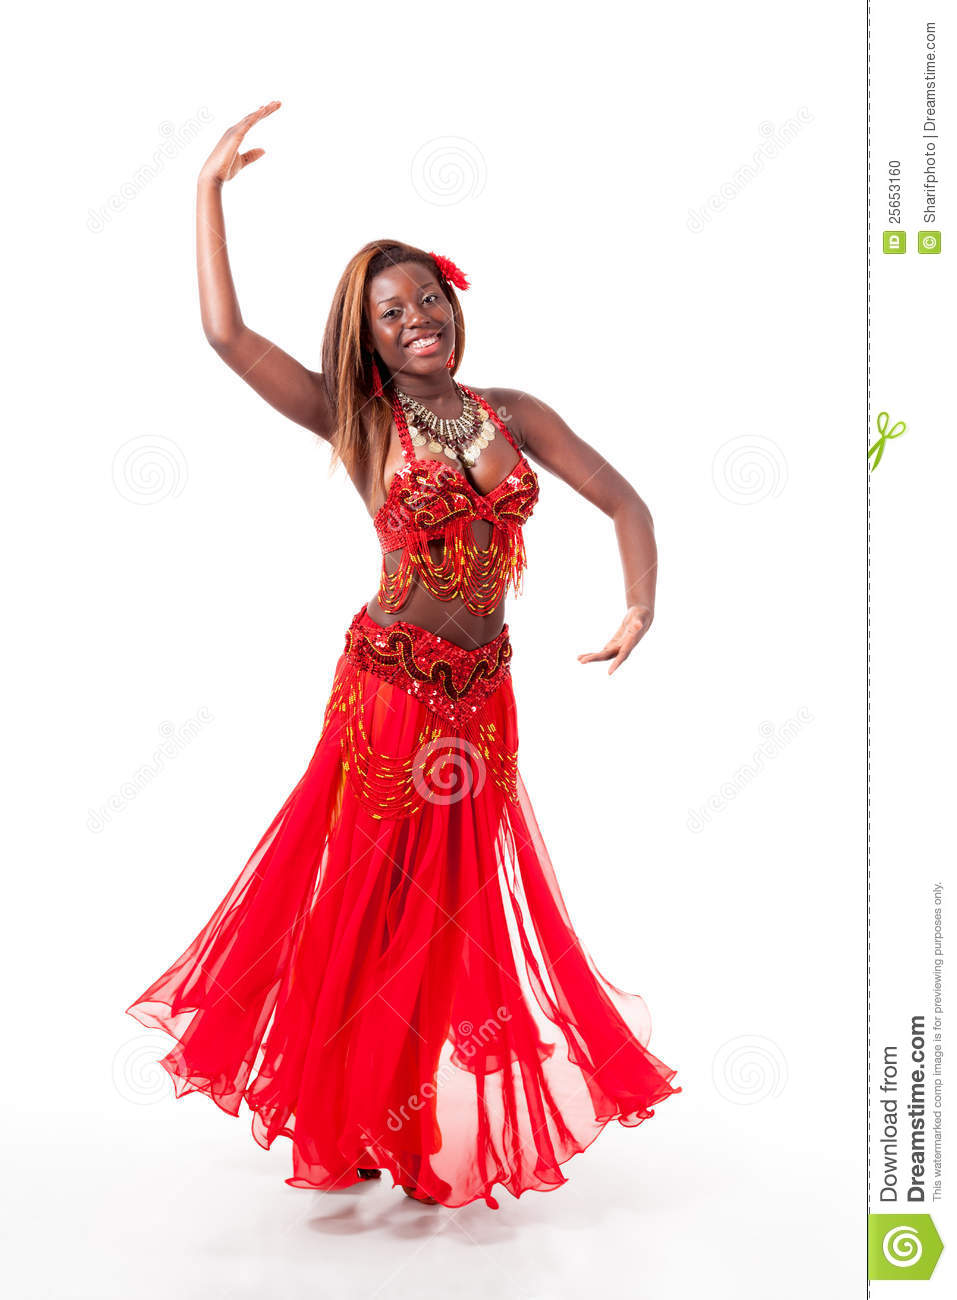 Young Belly Dancer In A Turn Stock Photo Image 25653160